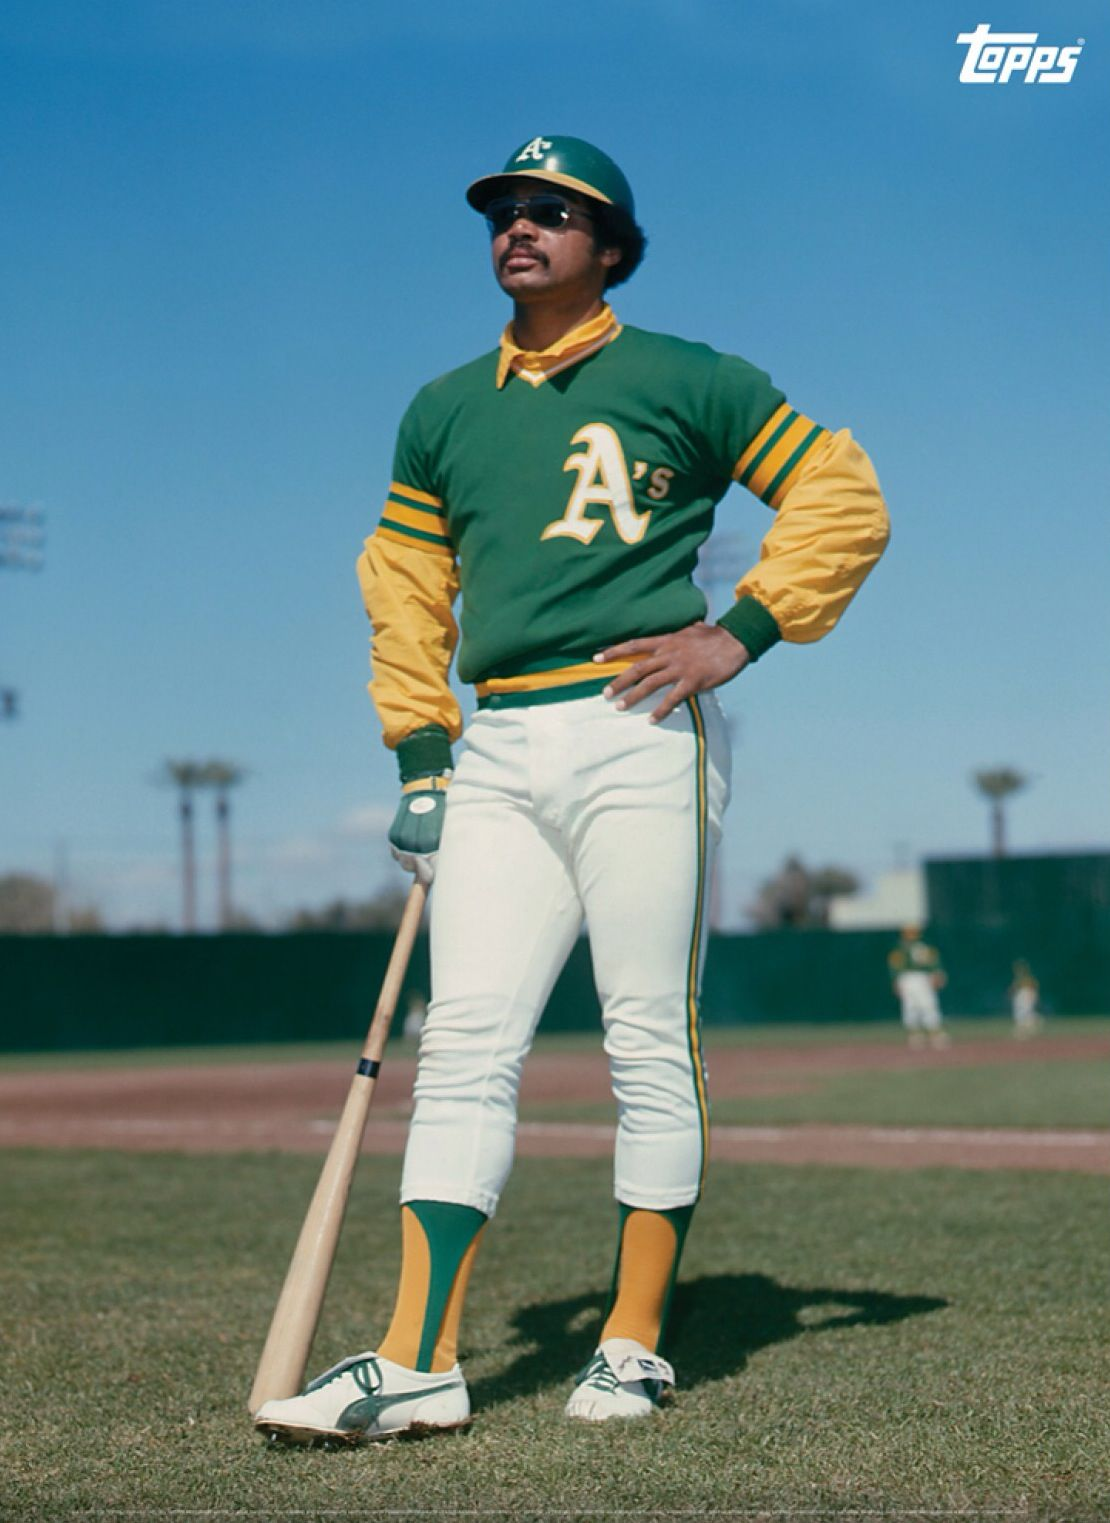 Image result for reggie jackson a's